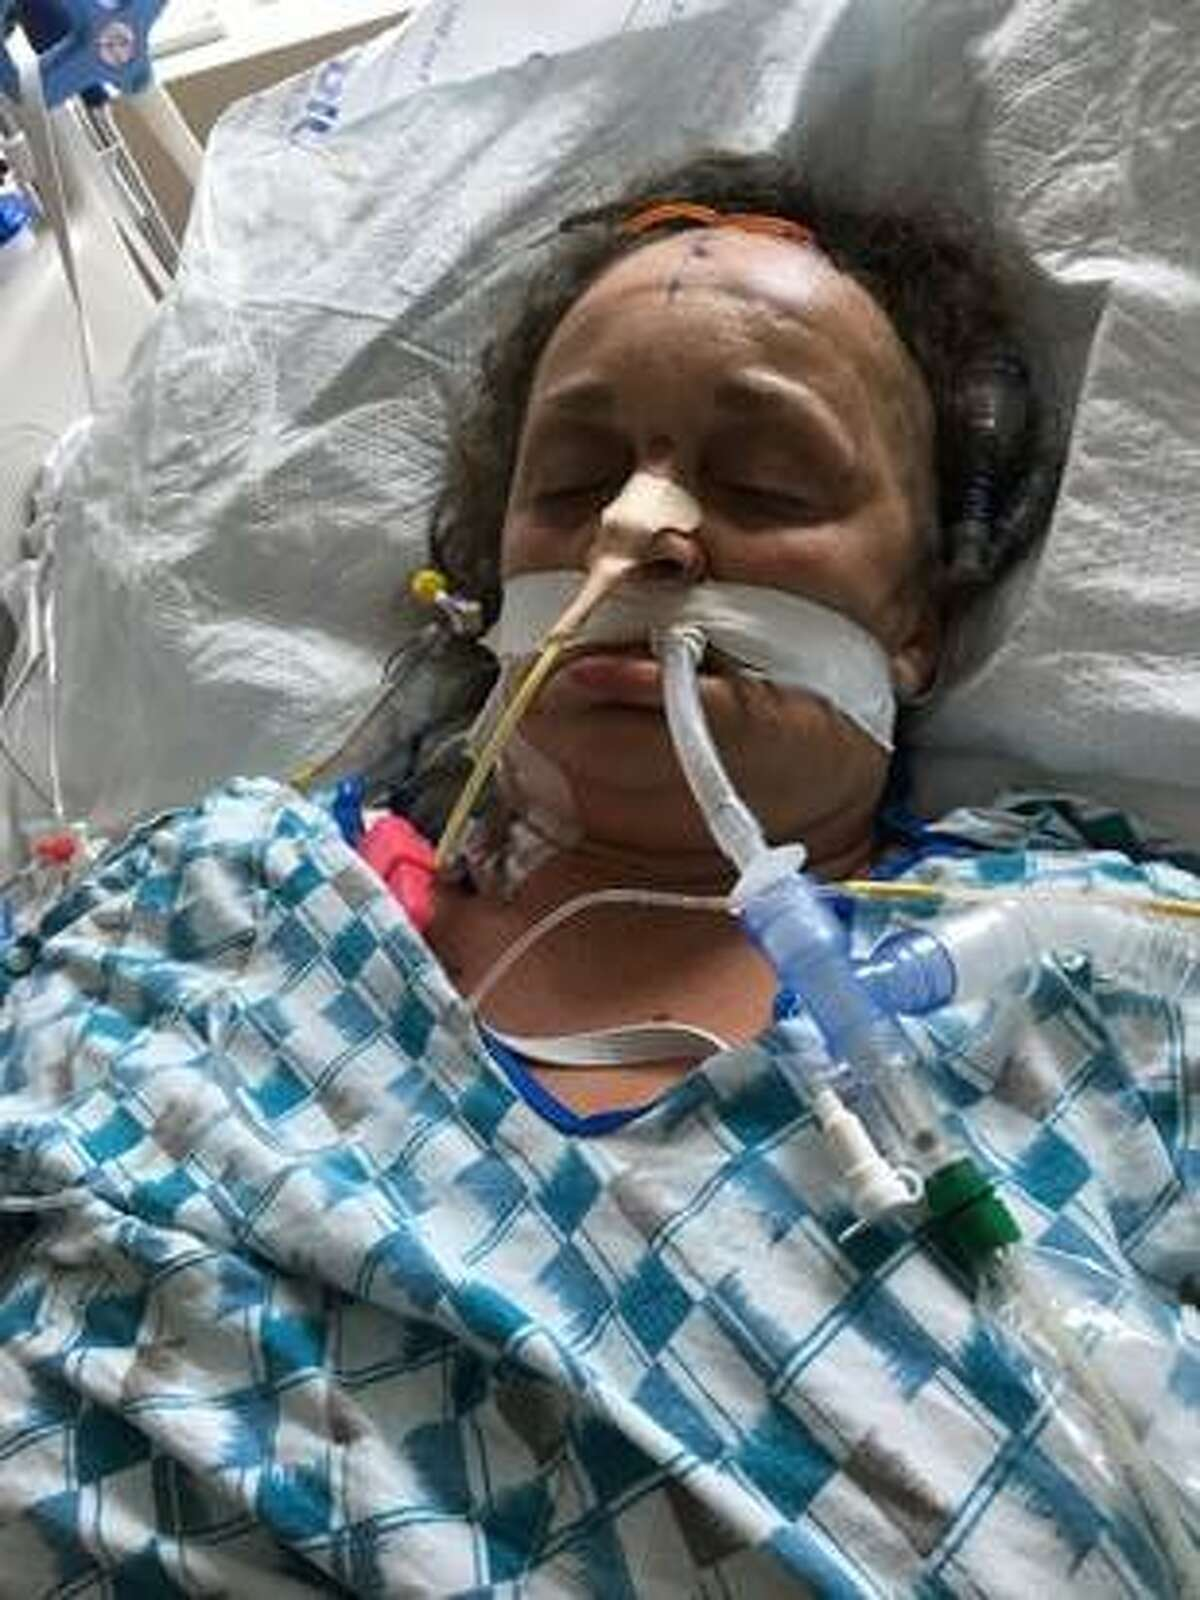 San Francisco General Hospital officials are seeking the community's help in identifying a patient in the hospital's care. The woman was found Aug. 16 near a hotel not far from San Francisco's airport. She is probably in her 50s and stands approximately 5 feet tall and weighs 150 pounds, officials said.